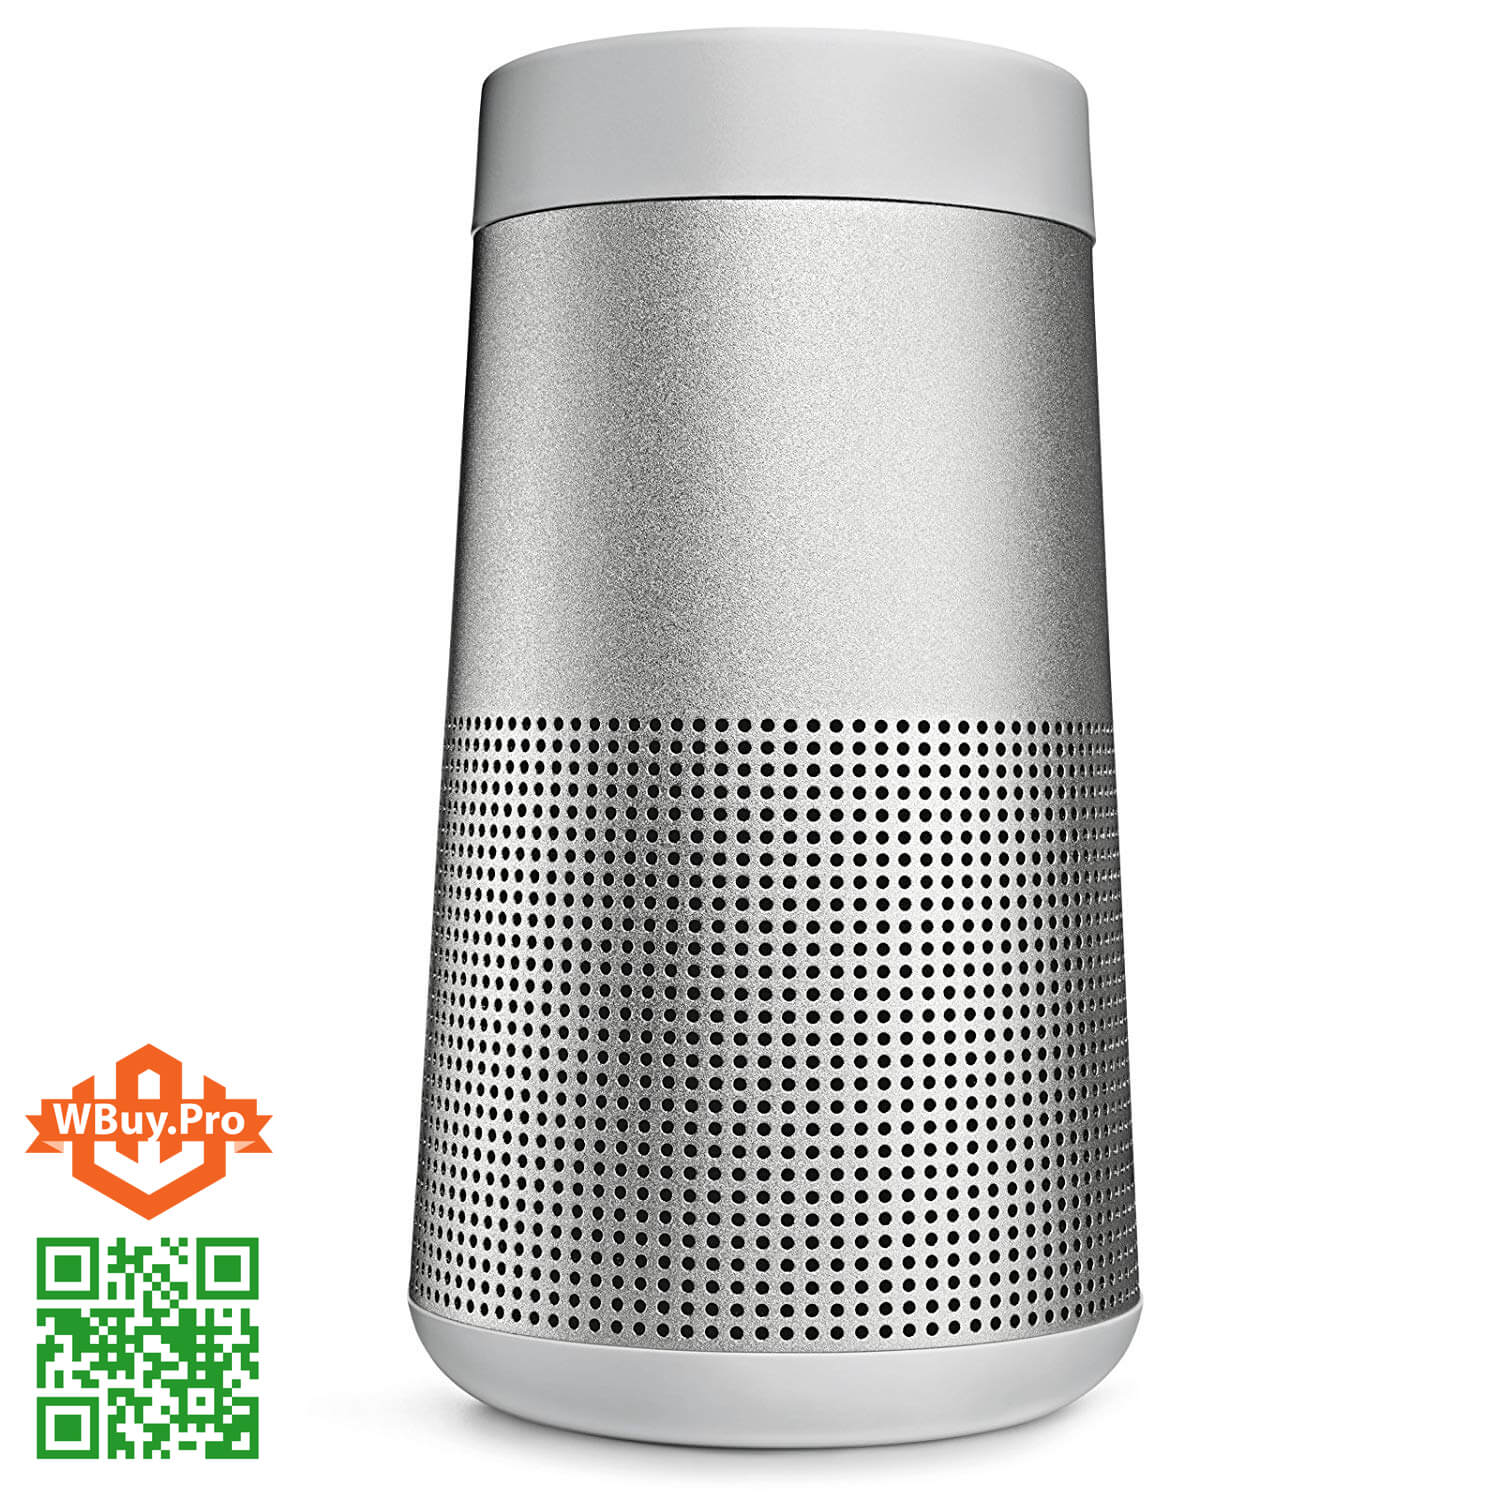 Loa Bose SoundLink Revolve 360 Speaker | Bluetooth